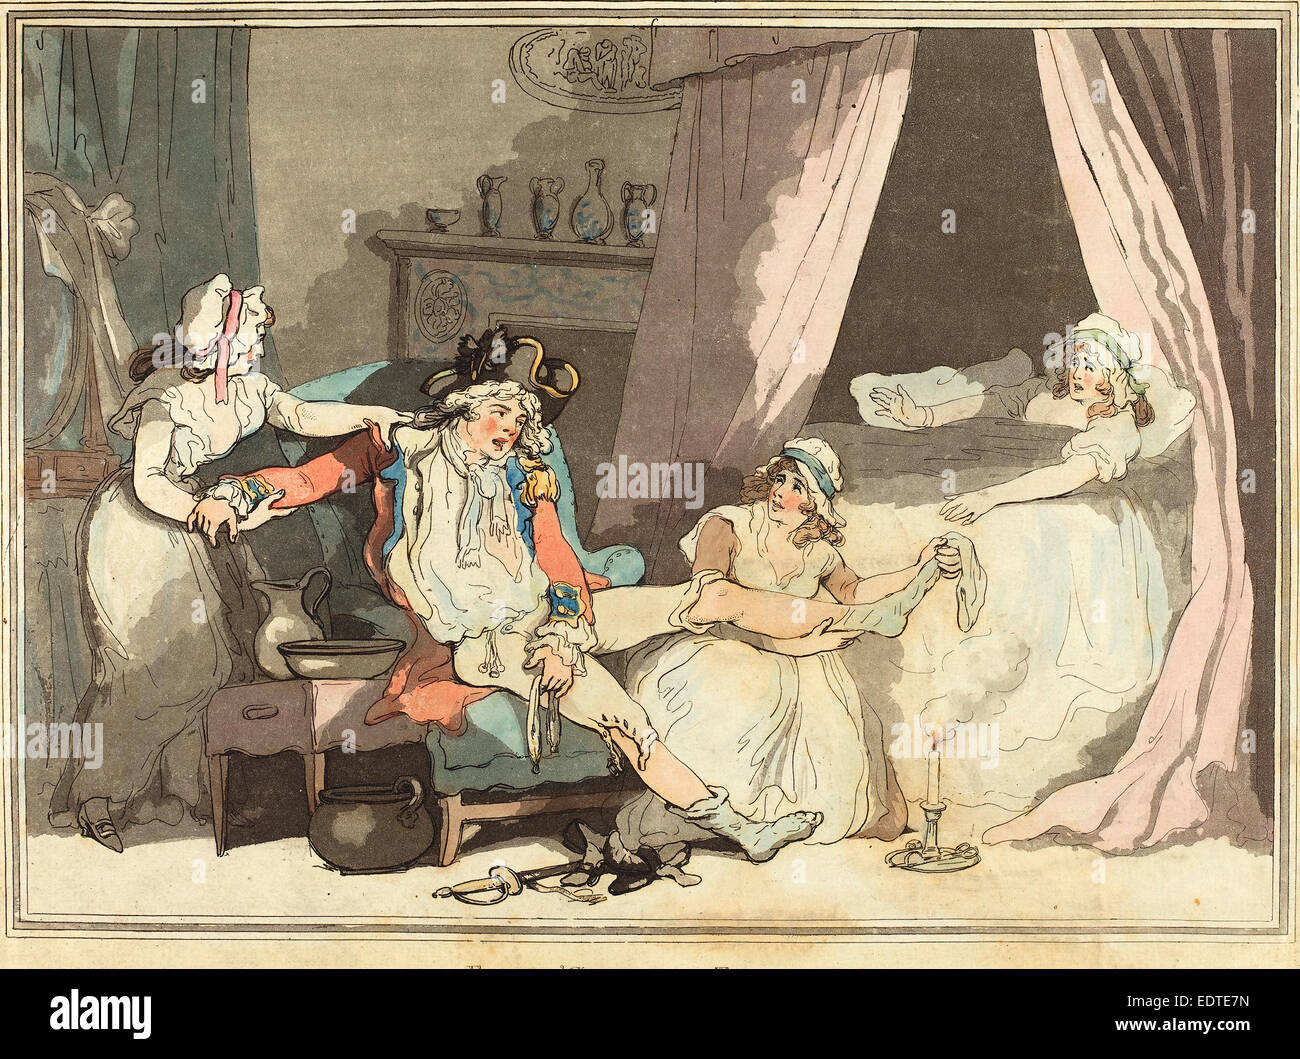 Thomas Rowlandson (British, 1756 - 1827), Four O'Clock in Town, 1788,  hand-colored etching and aquatint